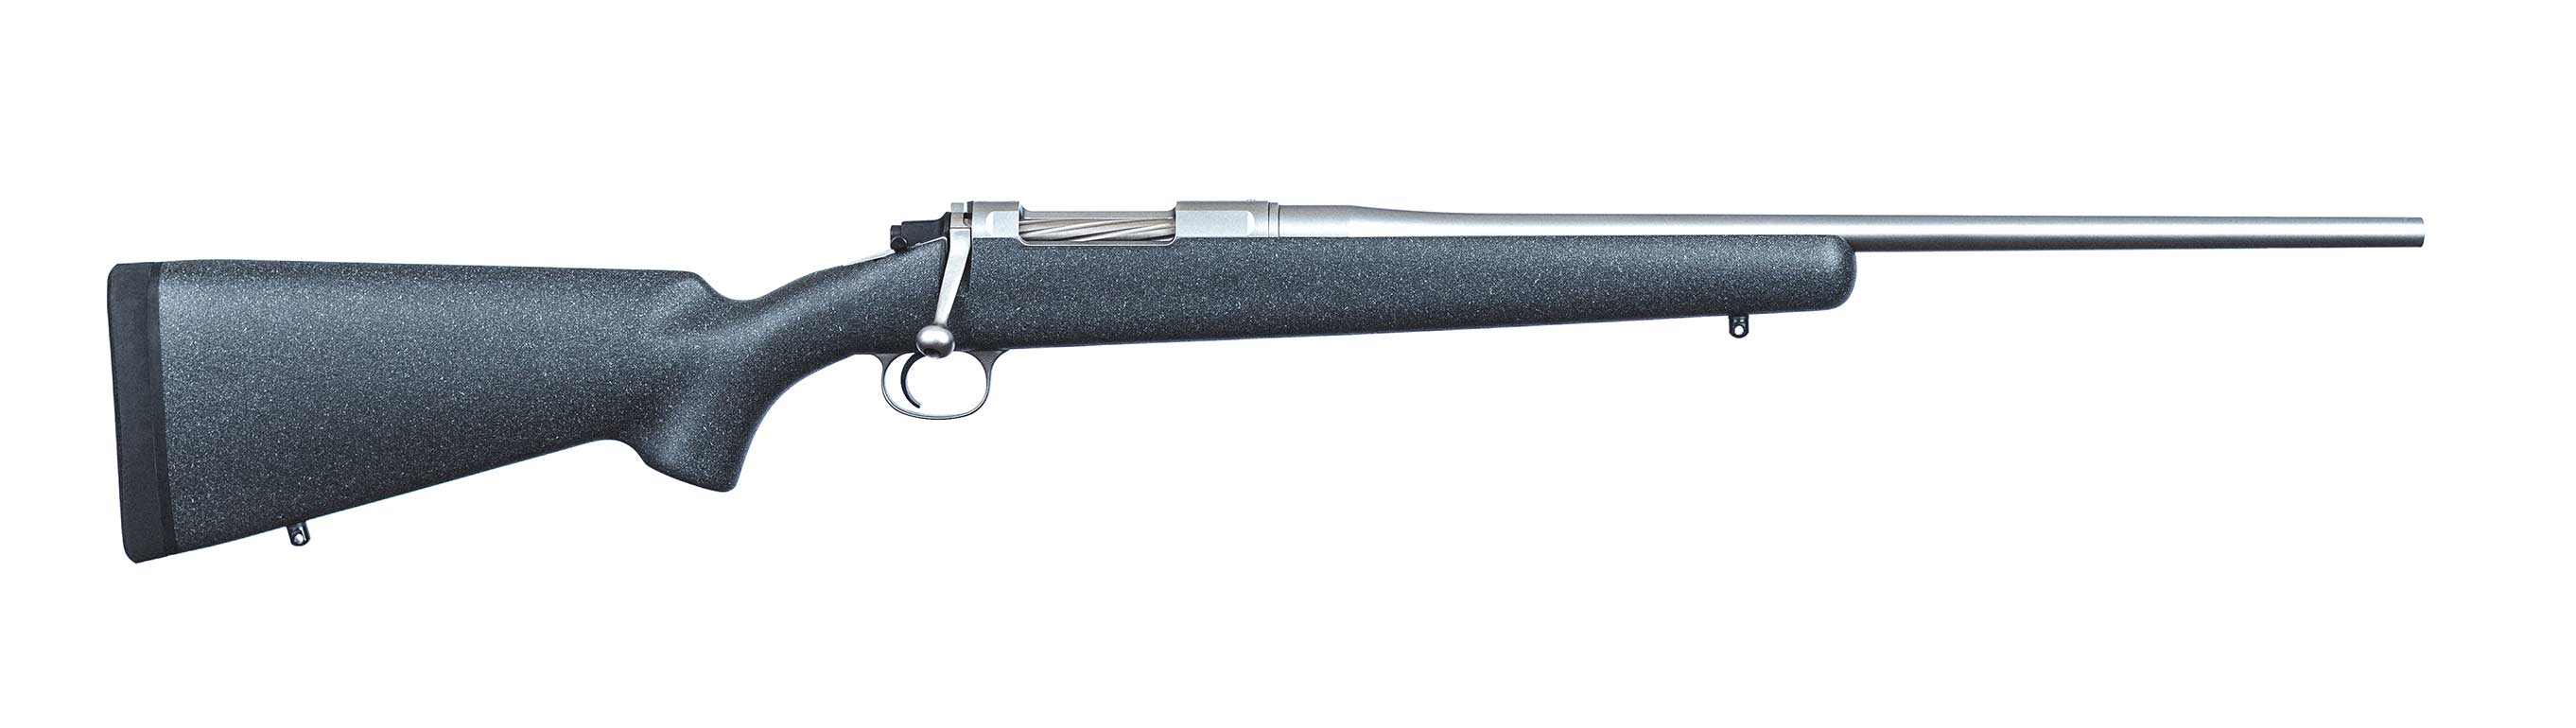 "Barrett Rifle Fieldcraft, 6.5 Creedmoor, 21"" Bbl, Charcoal Grey, Right Hand 16764